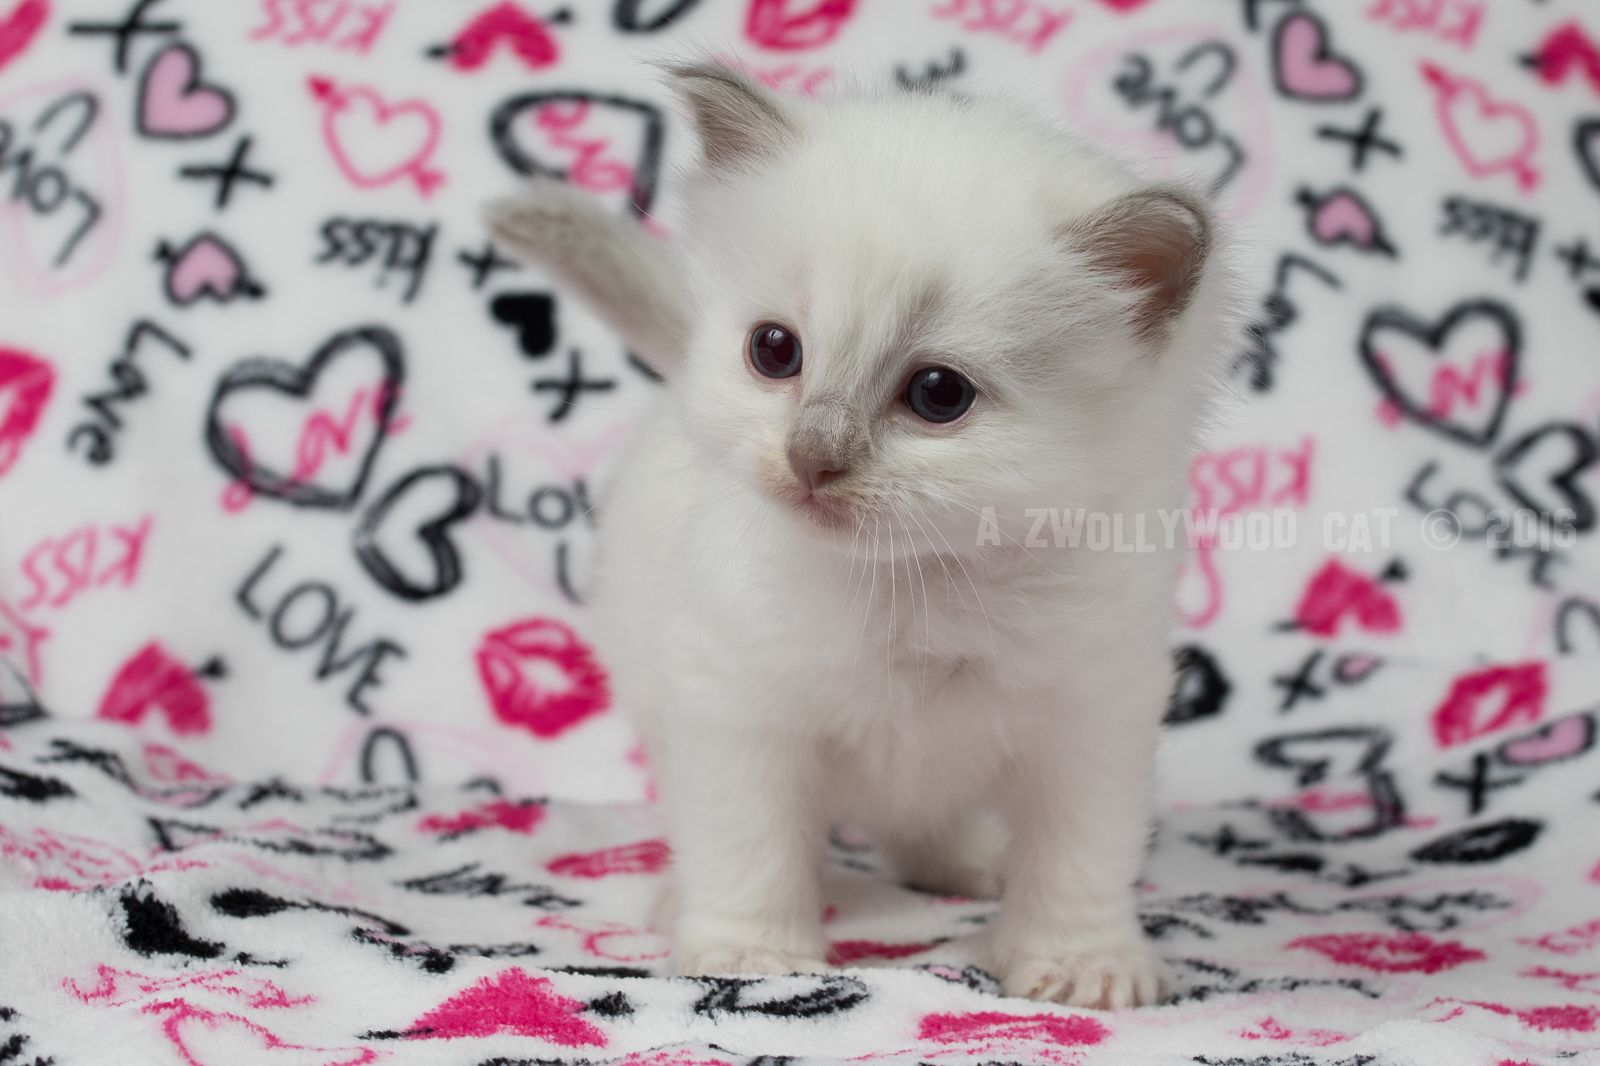 2016 Barney Rubble A Zwollywood Cat 4 Weeks Old Ragdoll Kitten Lilac Colourpoint Flintstones Litter Dog Cat Cats Funny Cat Faces